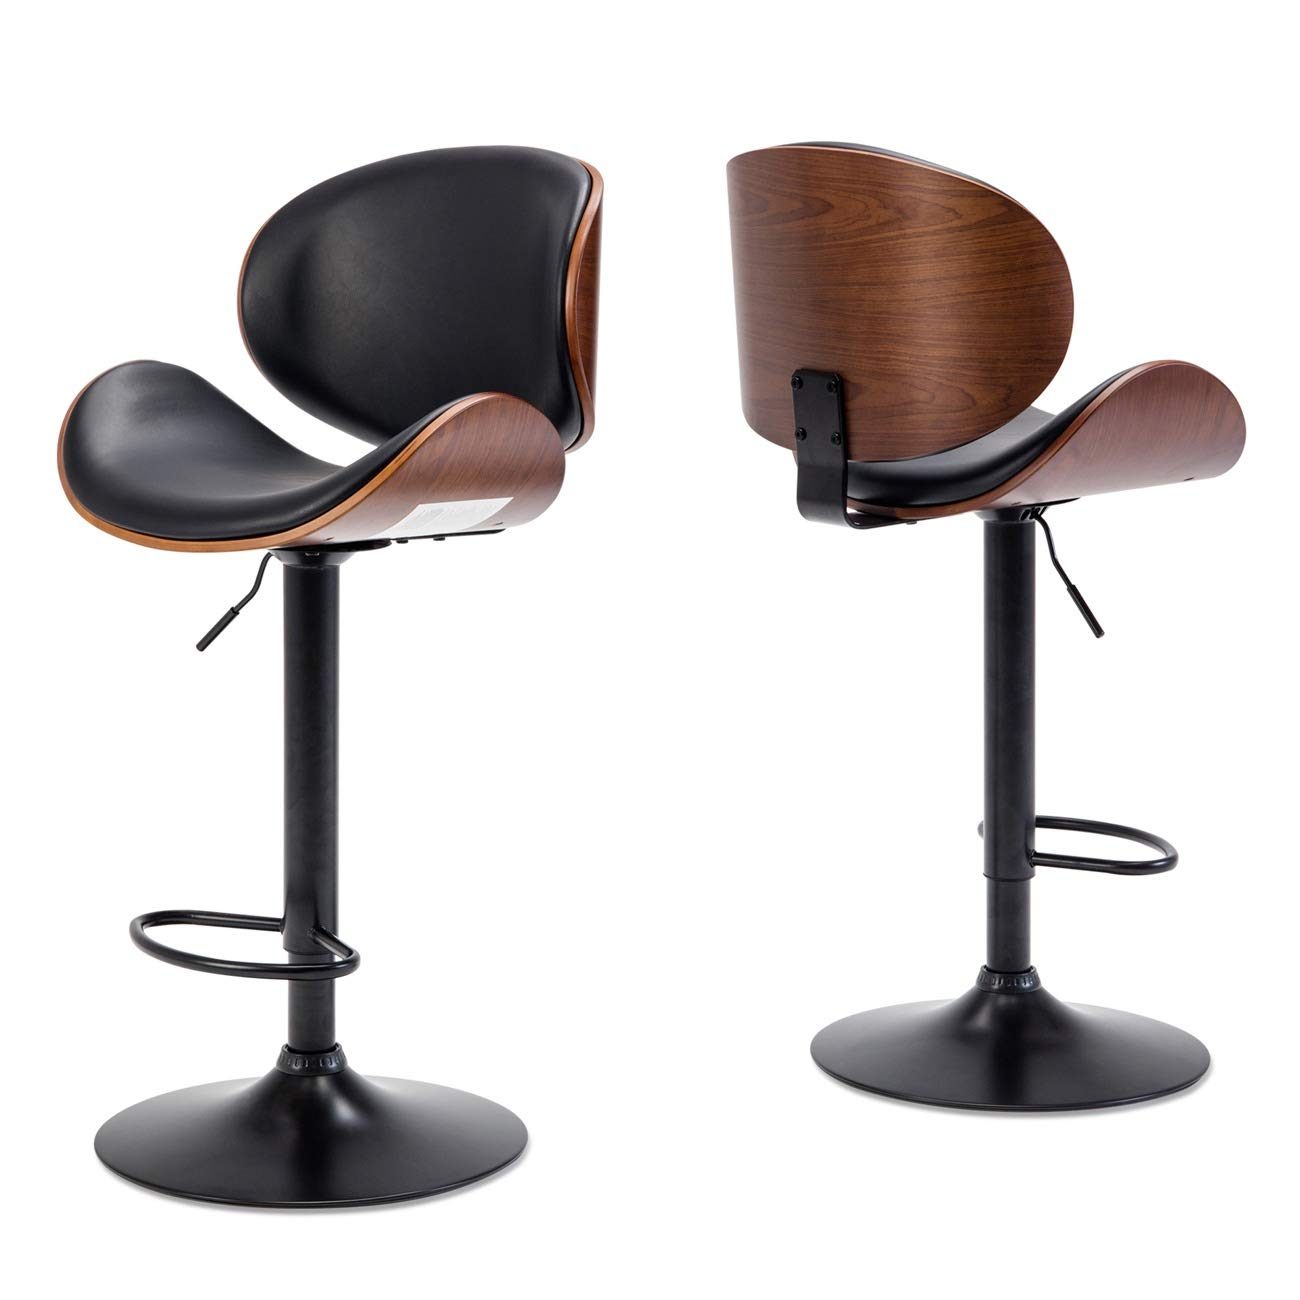 BELLEZE Set of 2 Bar Stool Modern Adjustable Counter Height Swivel Walnut Curved Back Faux Leather Base Barstool, Black